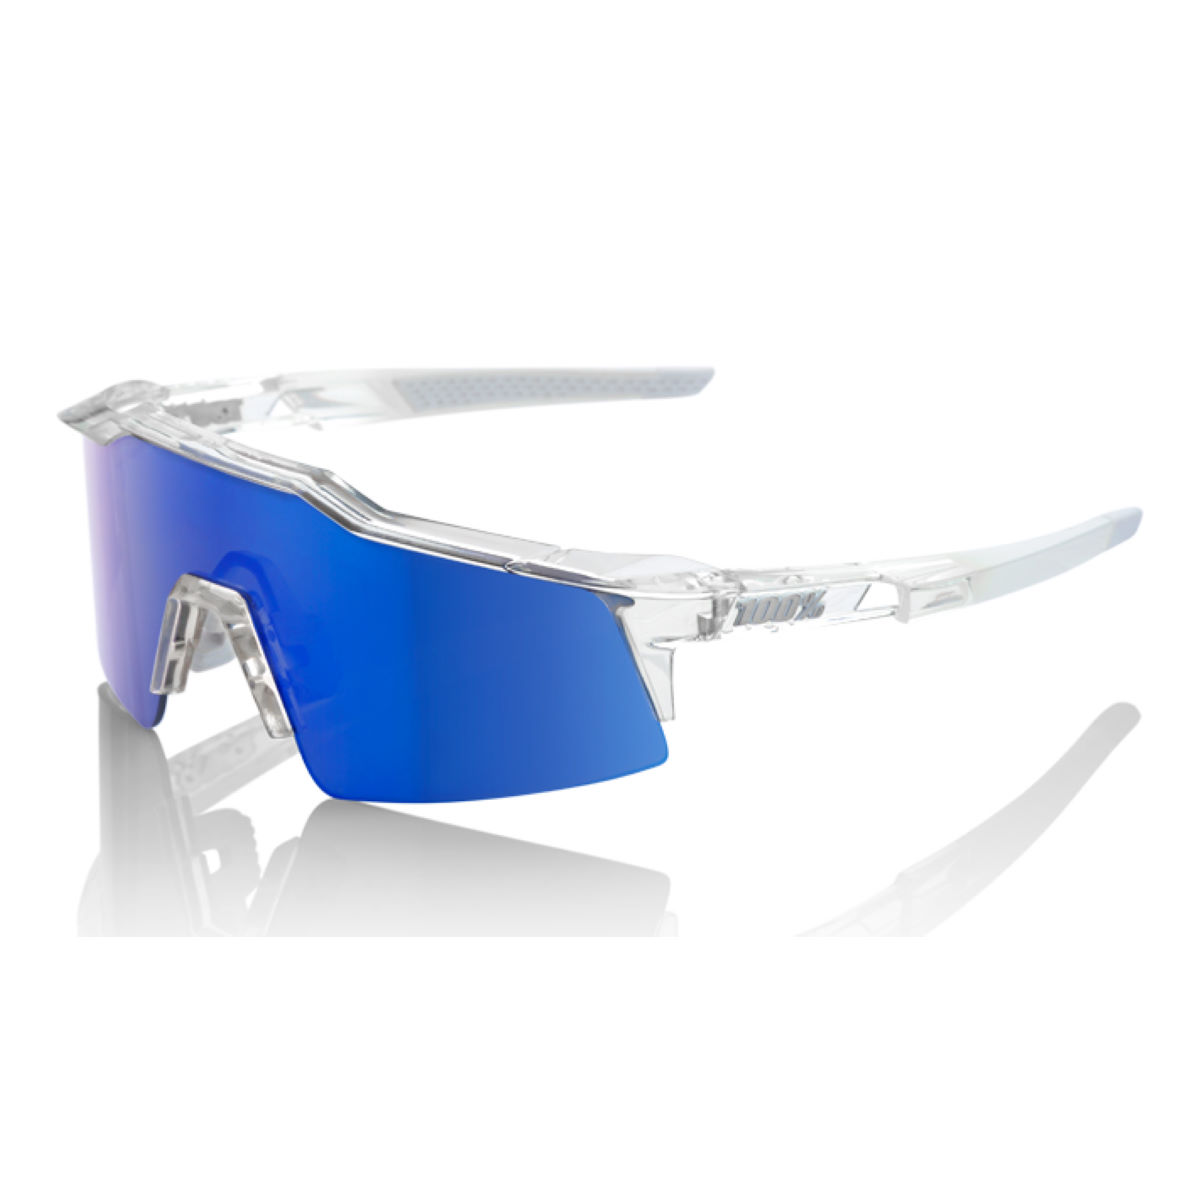 Gafas de sol 100% Speedcraft Short (lente Ice Mirror) - Gafas de sol